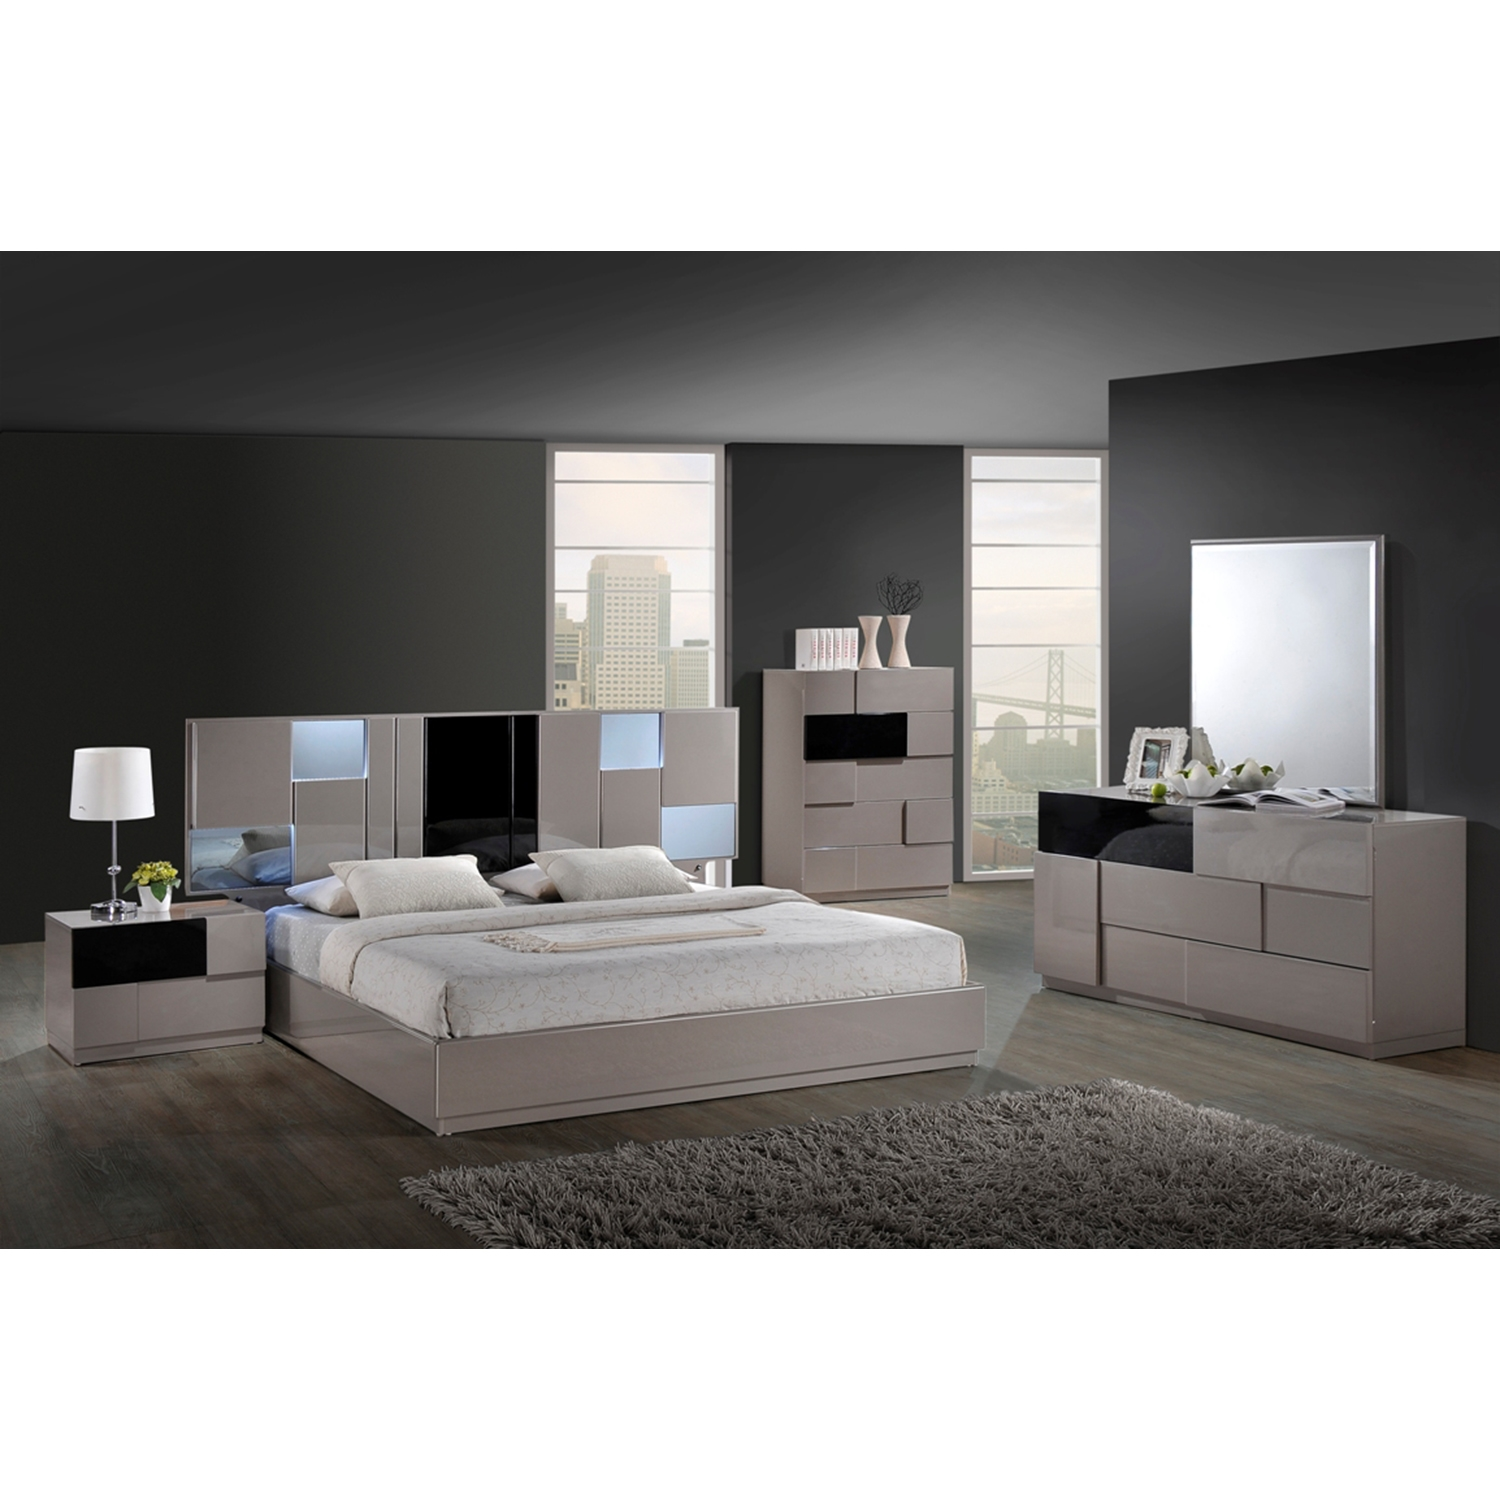 Bianca Bed in High Gloss Gray and Black - GLO-BIANCA-916-GR-BL-BED